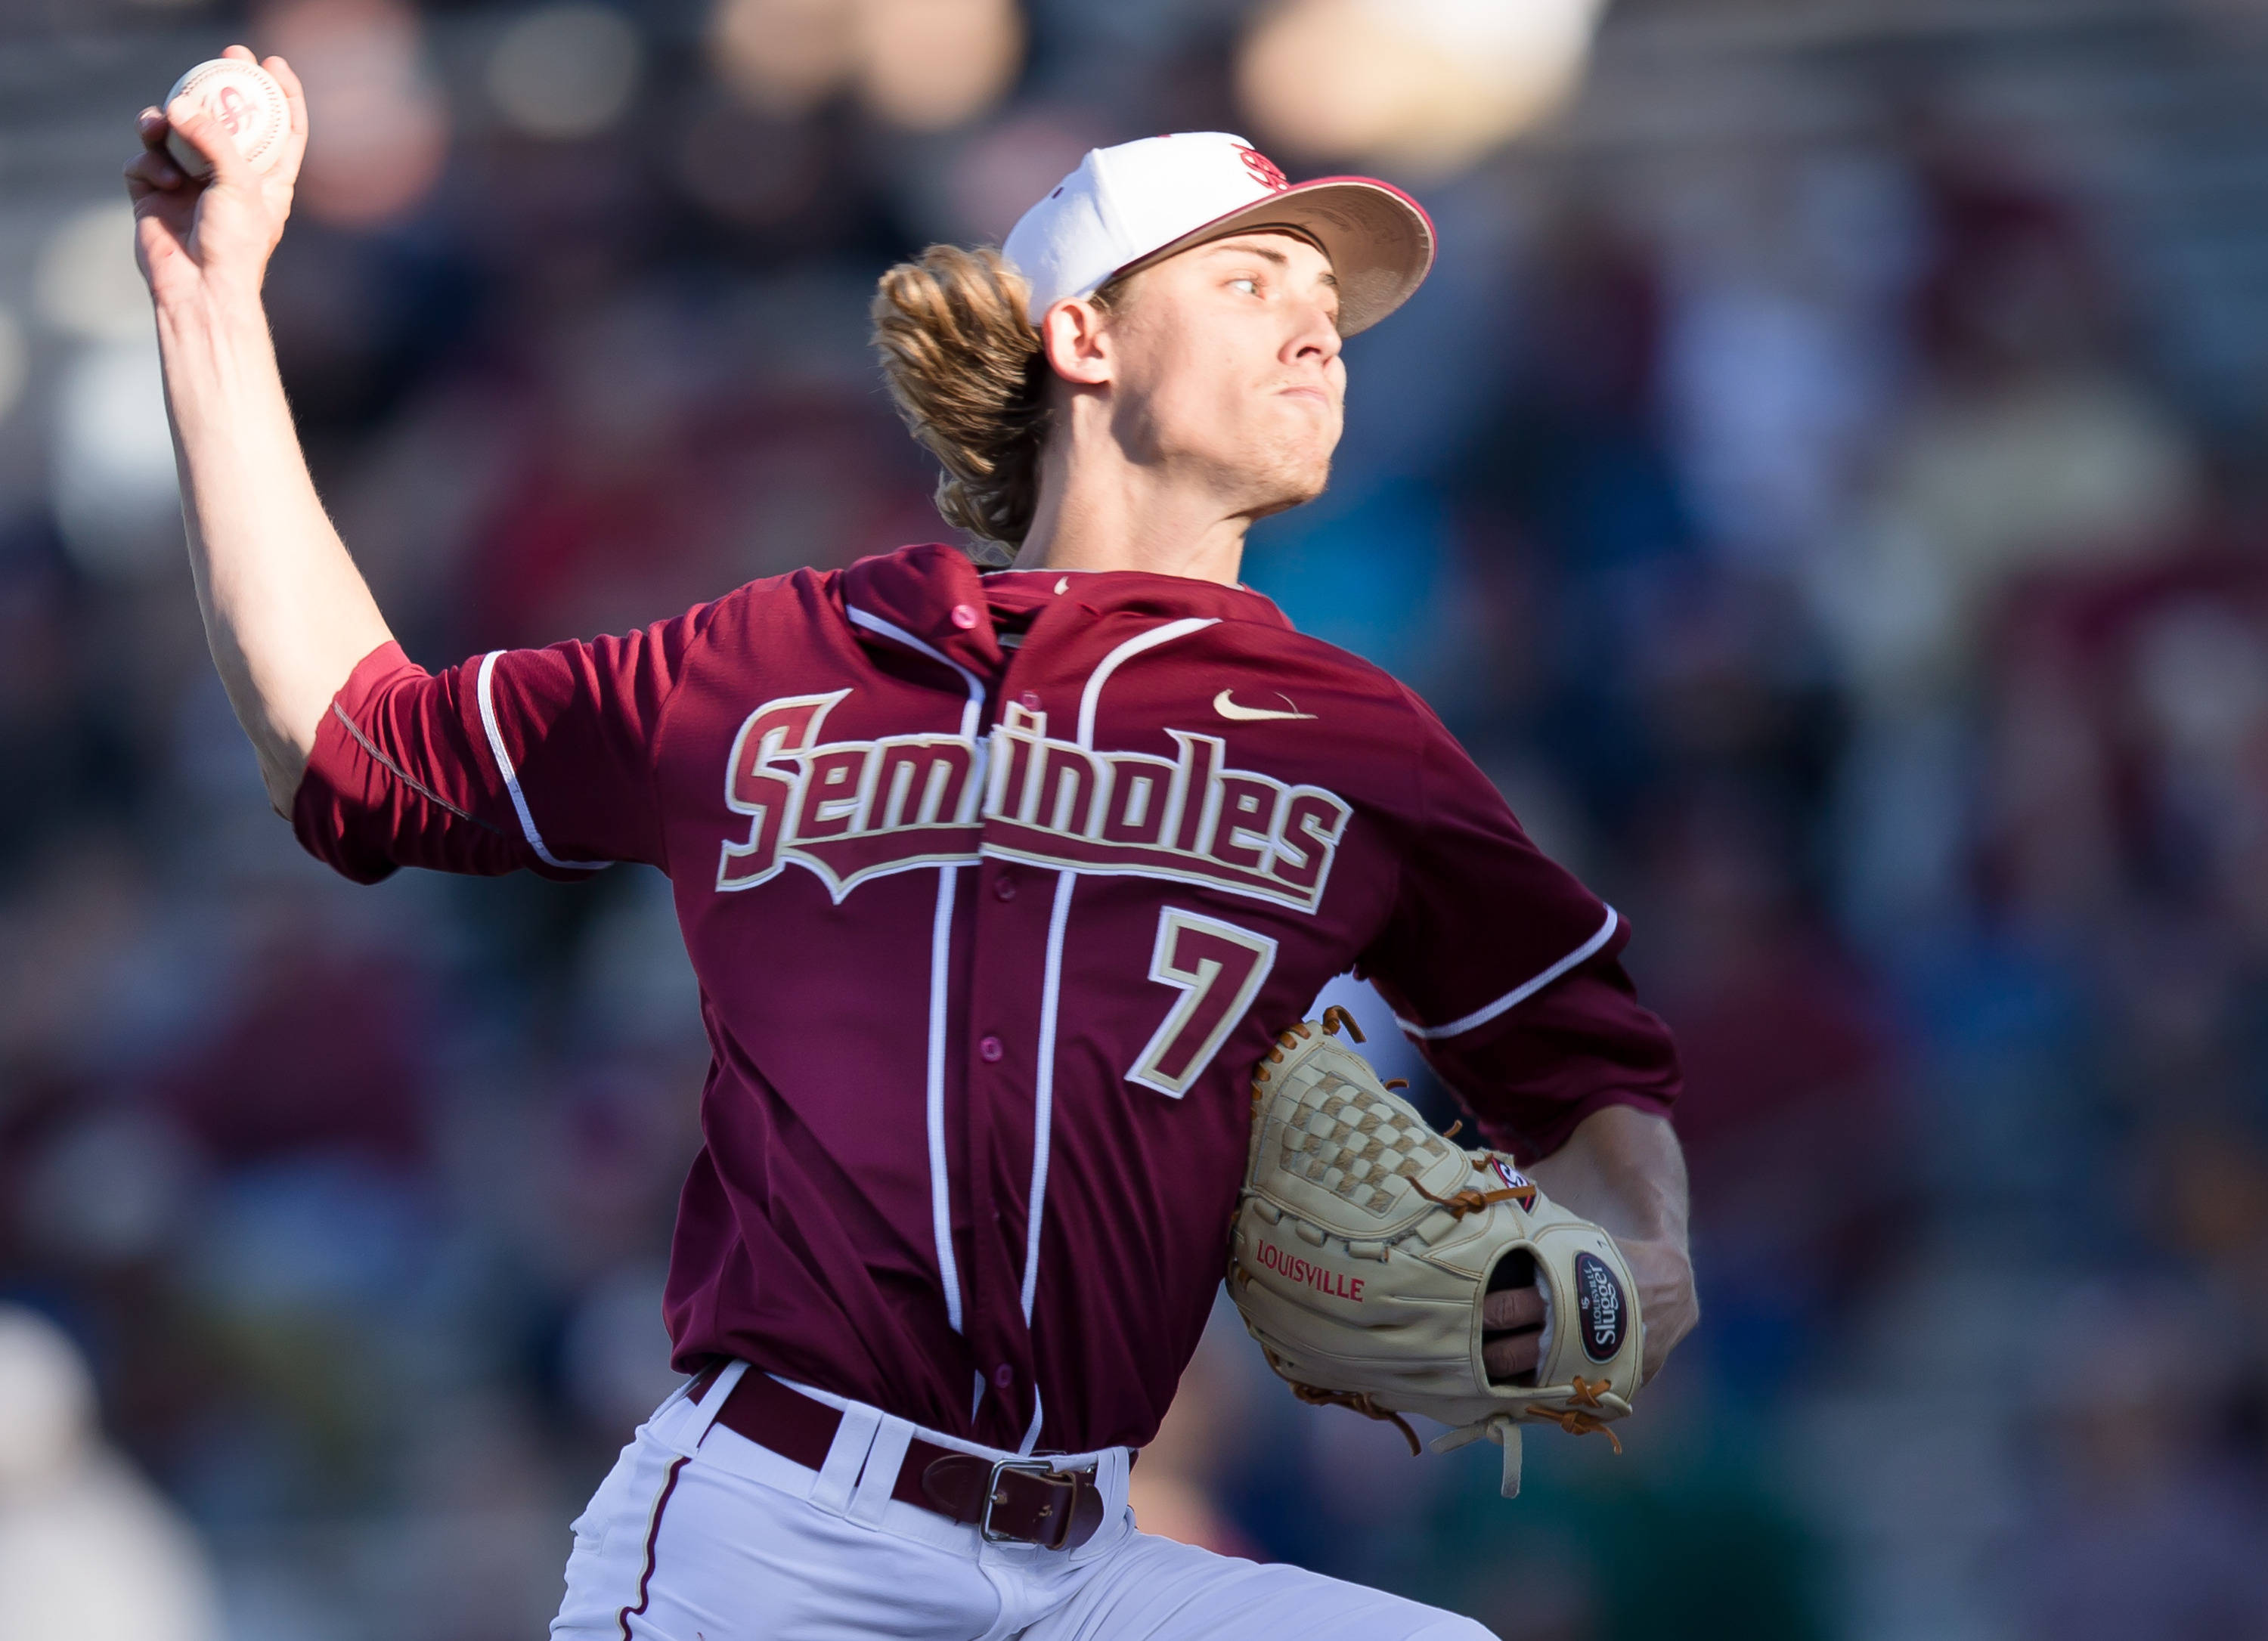 Luke Weaver (7) pitched 6.1 innings, allowed 1 earned run and picked up the Seminole win.